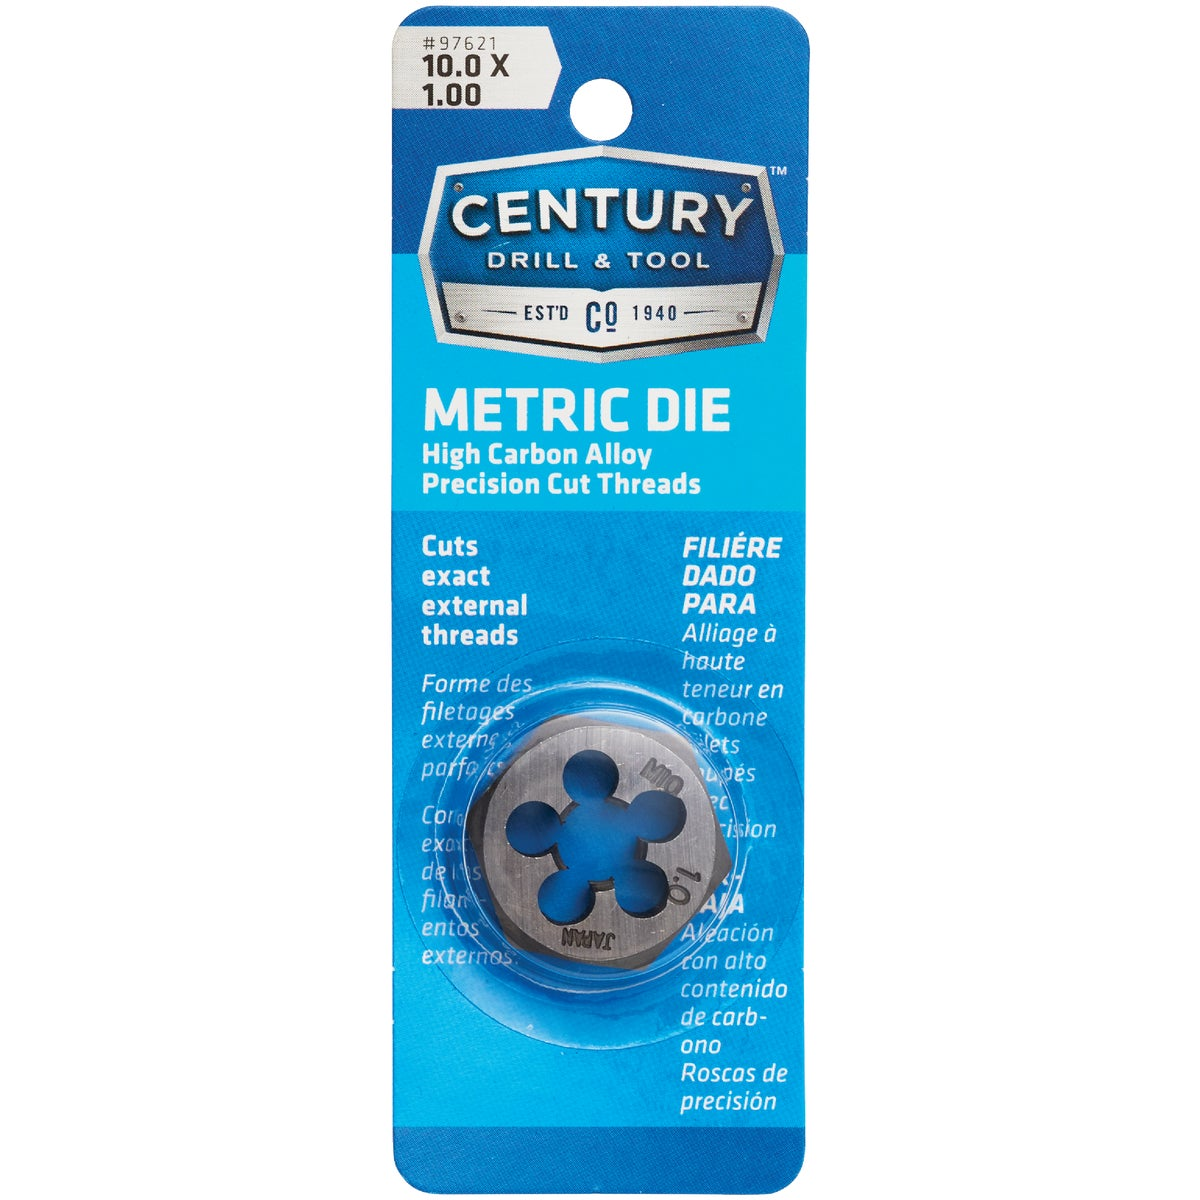 10MM-1.00 HEX DIE - 9738 by Irwin Industr Tool